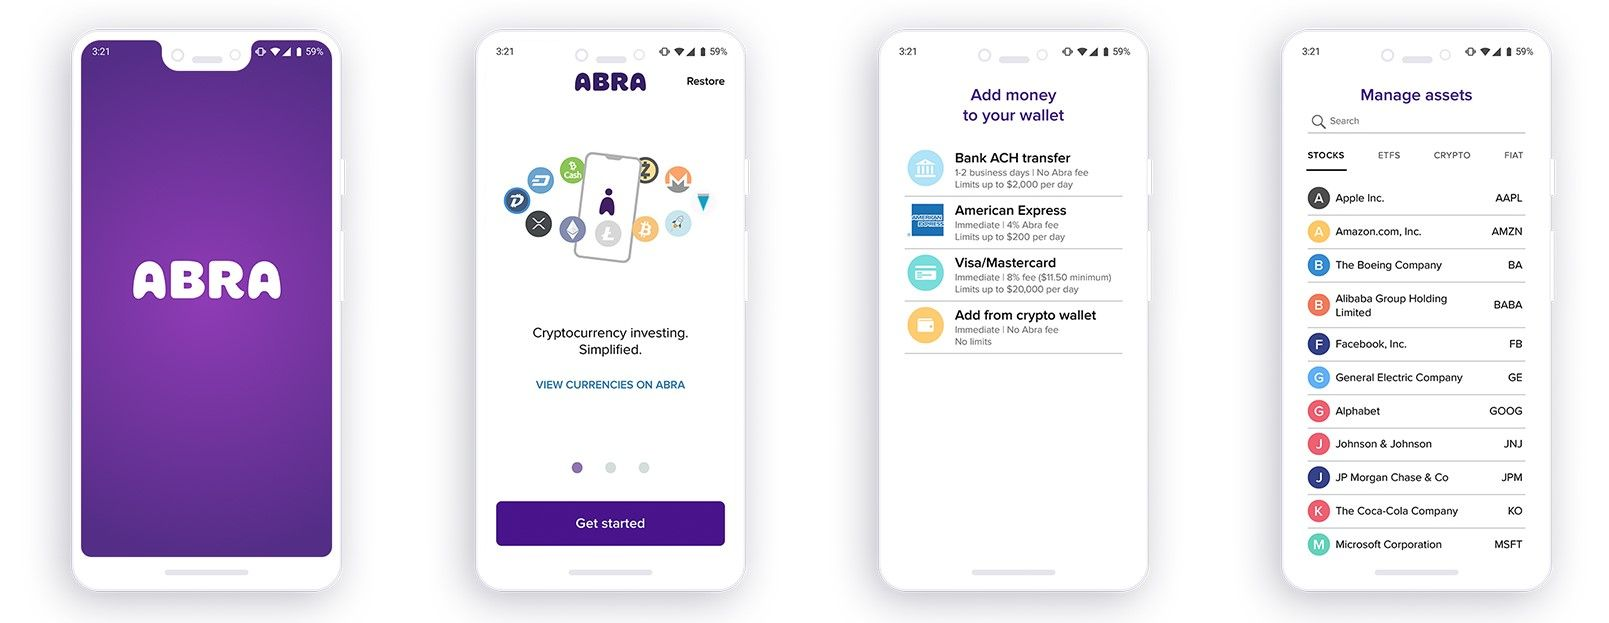 Abras blockchain app to let users make small stock etf